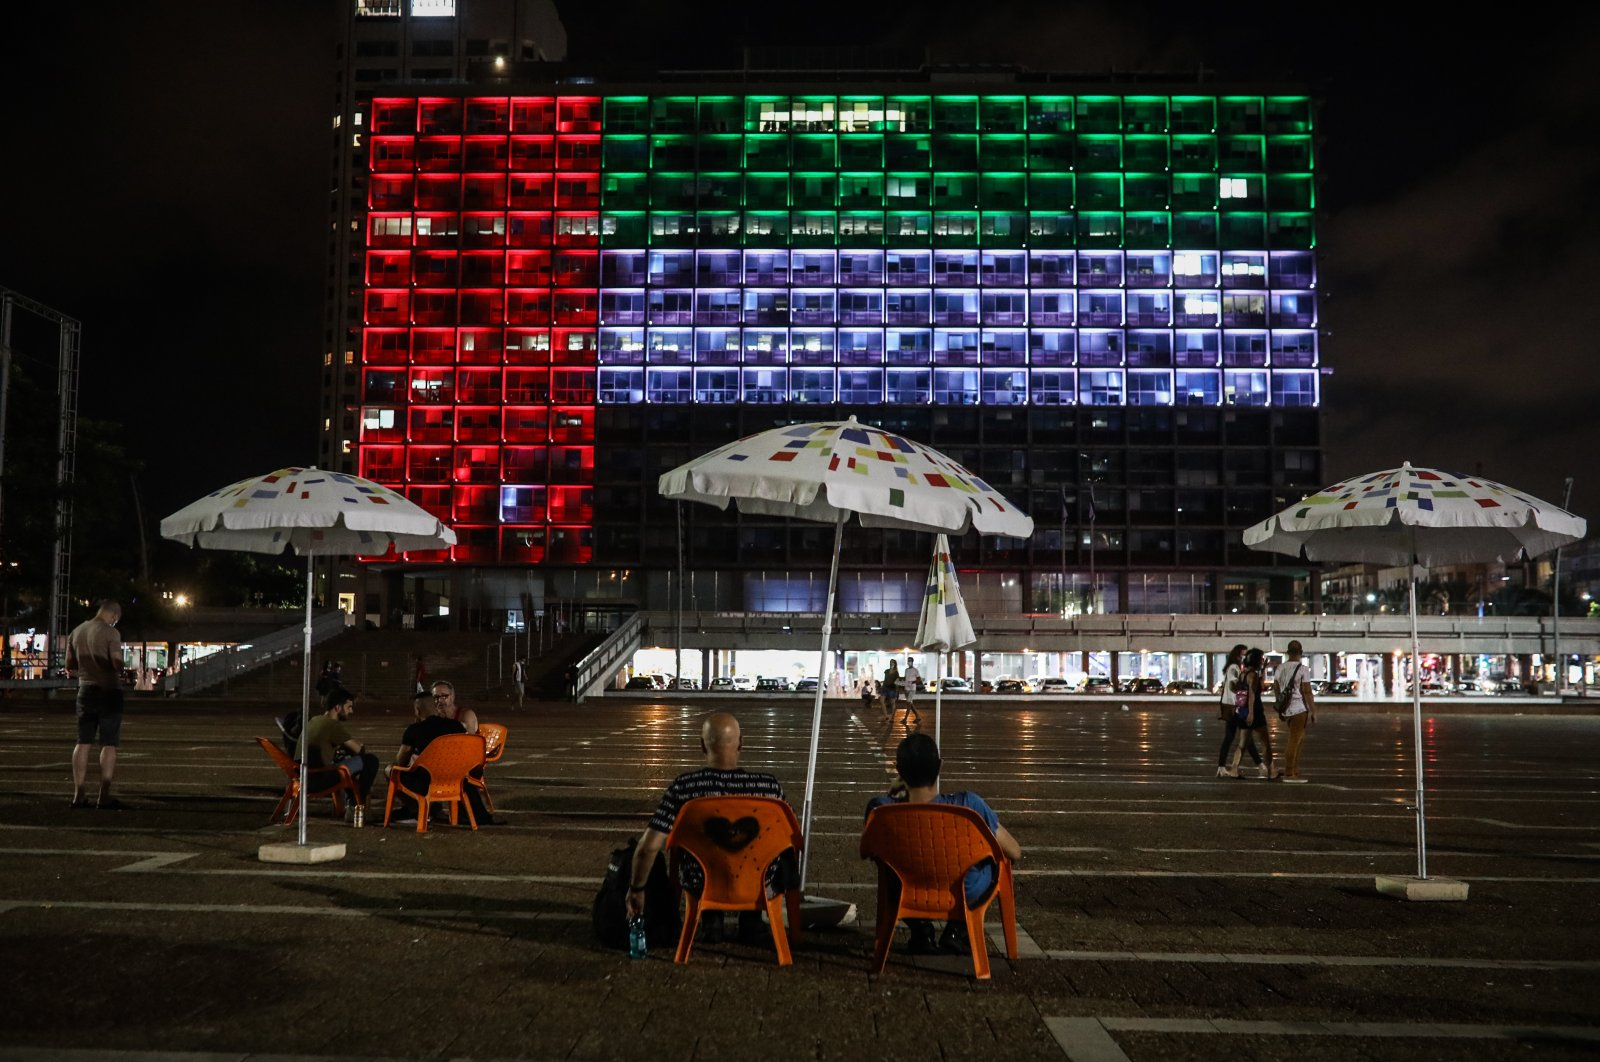 The United Arab Emirates's national flag displayed on a building following the UAE-Israel normalization deal, Tel Aviv, Israel, Aug. 13, 2020. (Photo by Getty Images)